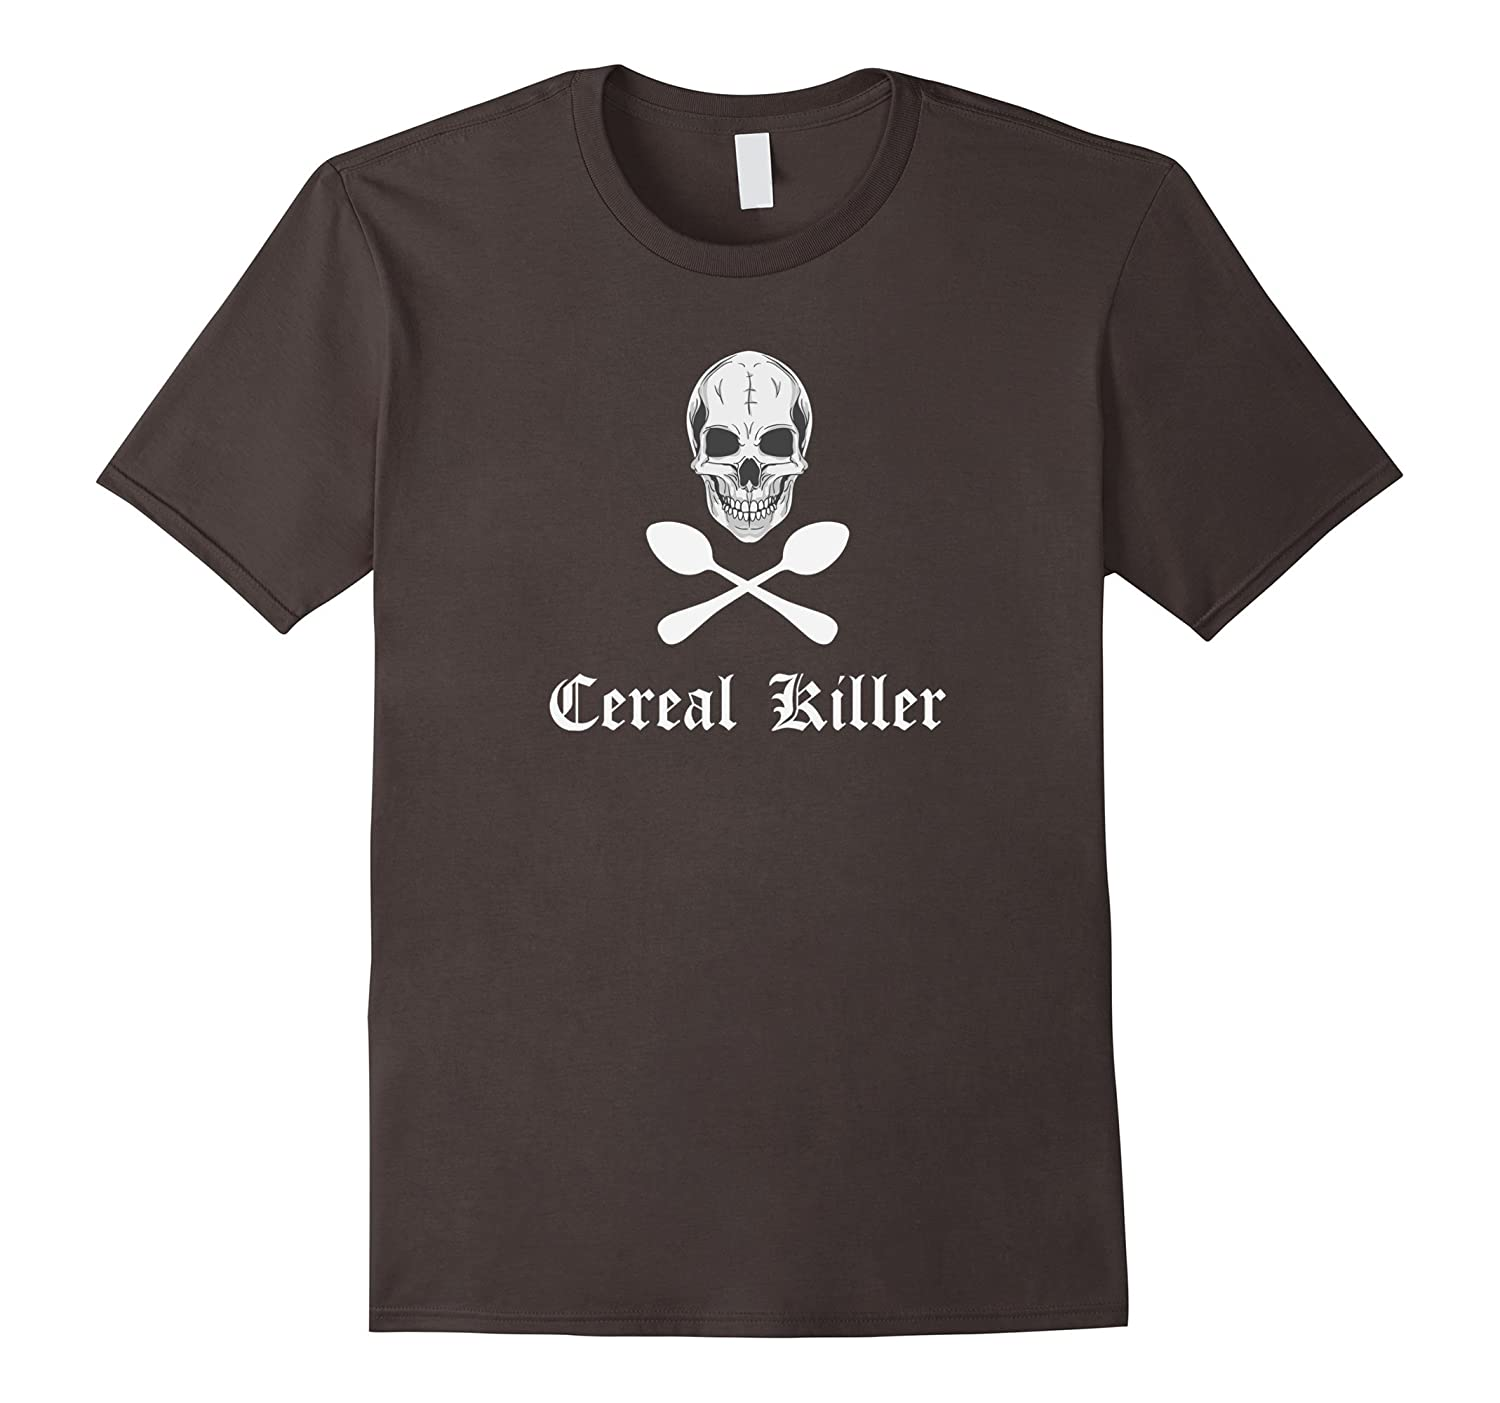 Cereal killer funny serial spoons halloween costume shirt rt ccuart Gallery